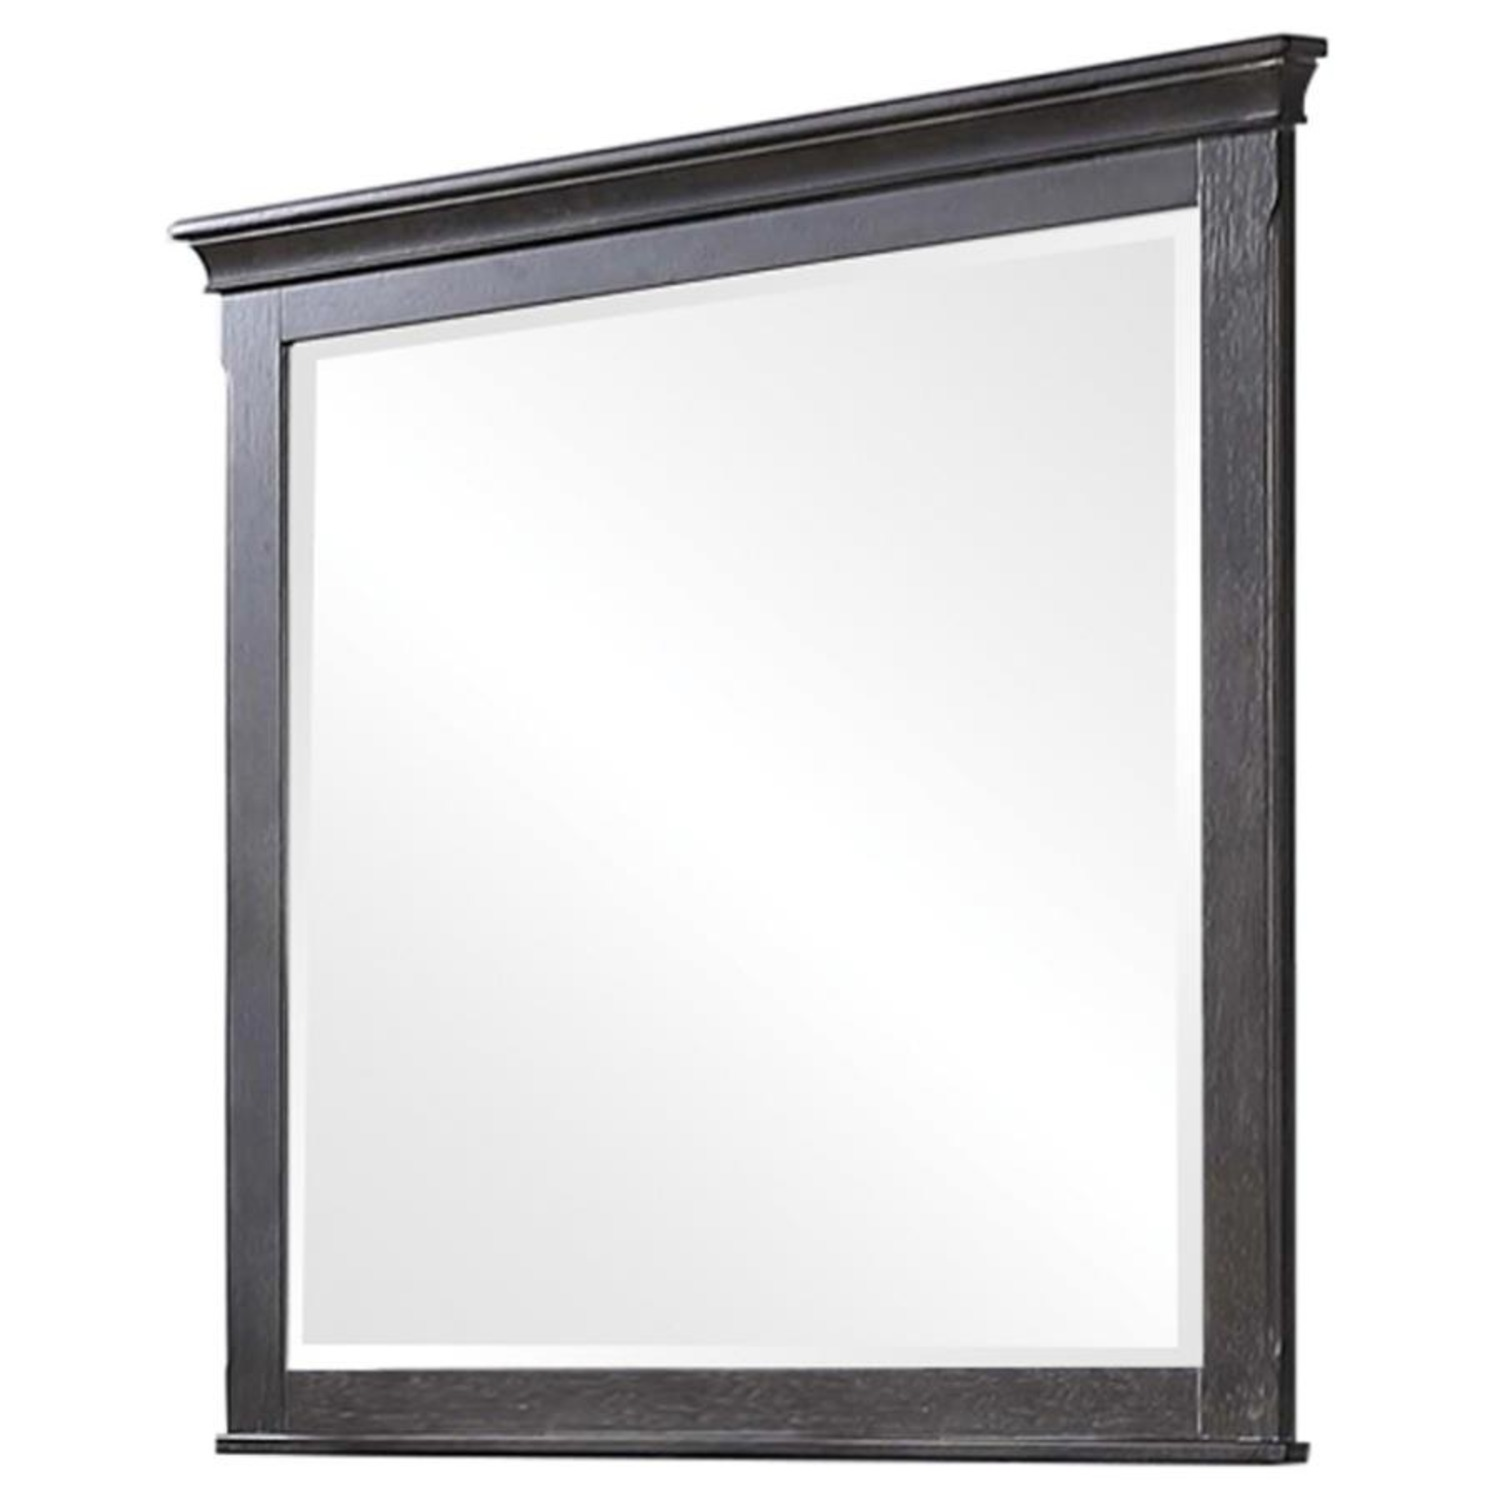 Mirror In Trending Weathered Sage Finish - image-1